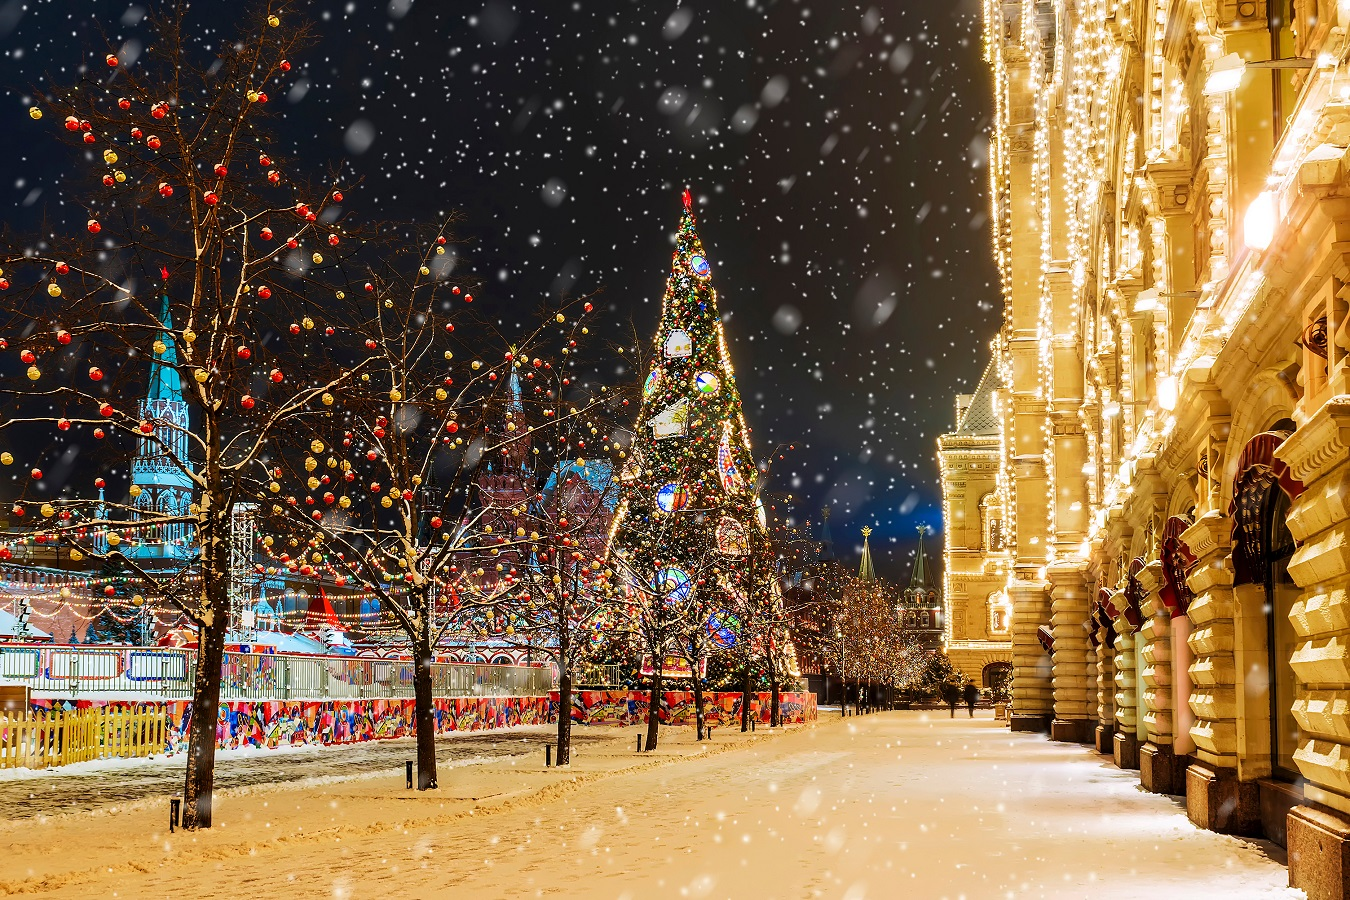 Top 5 Decorated Cities To Visit For Christmas